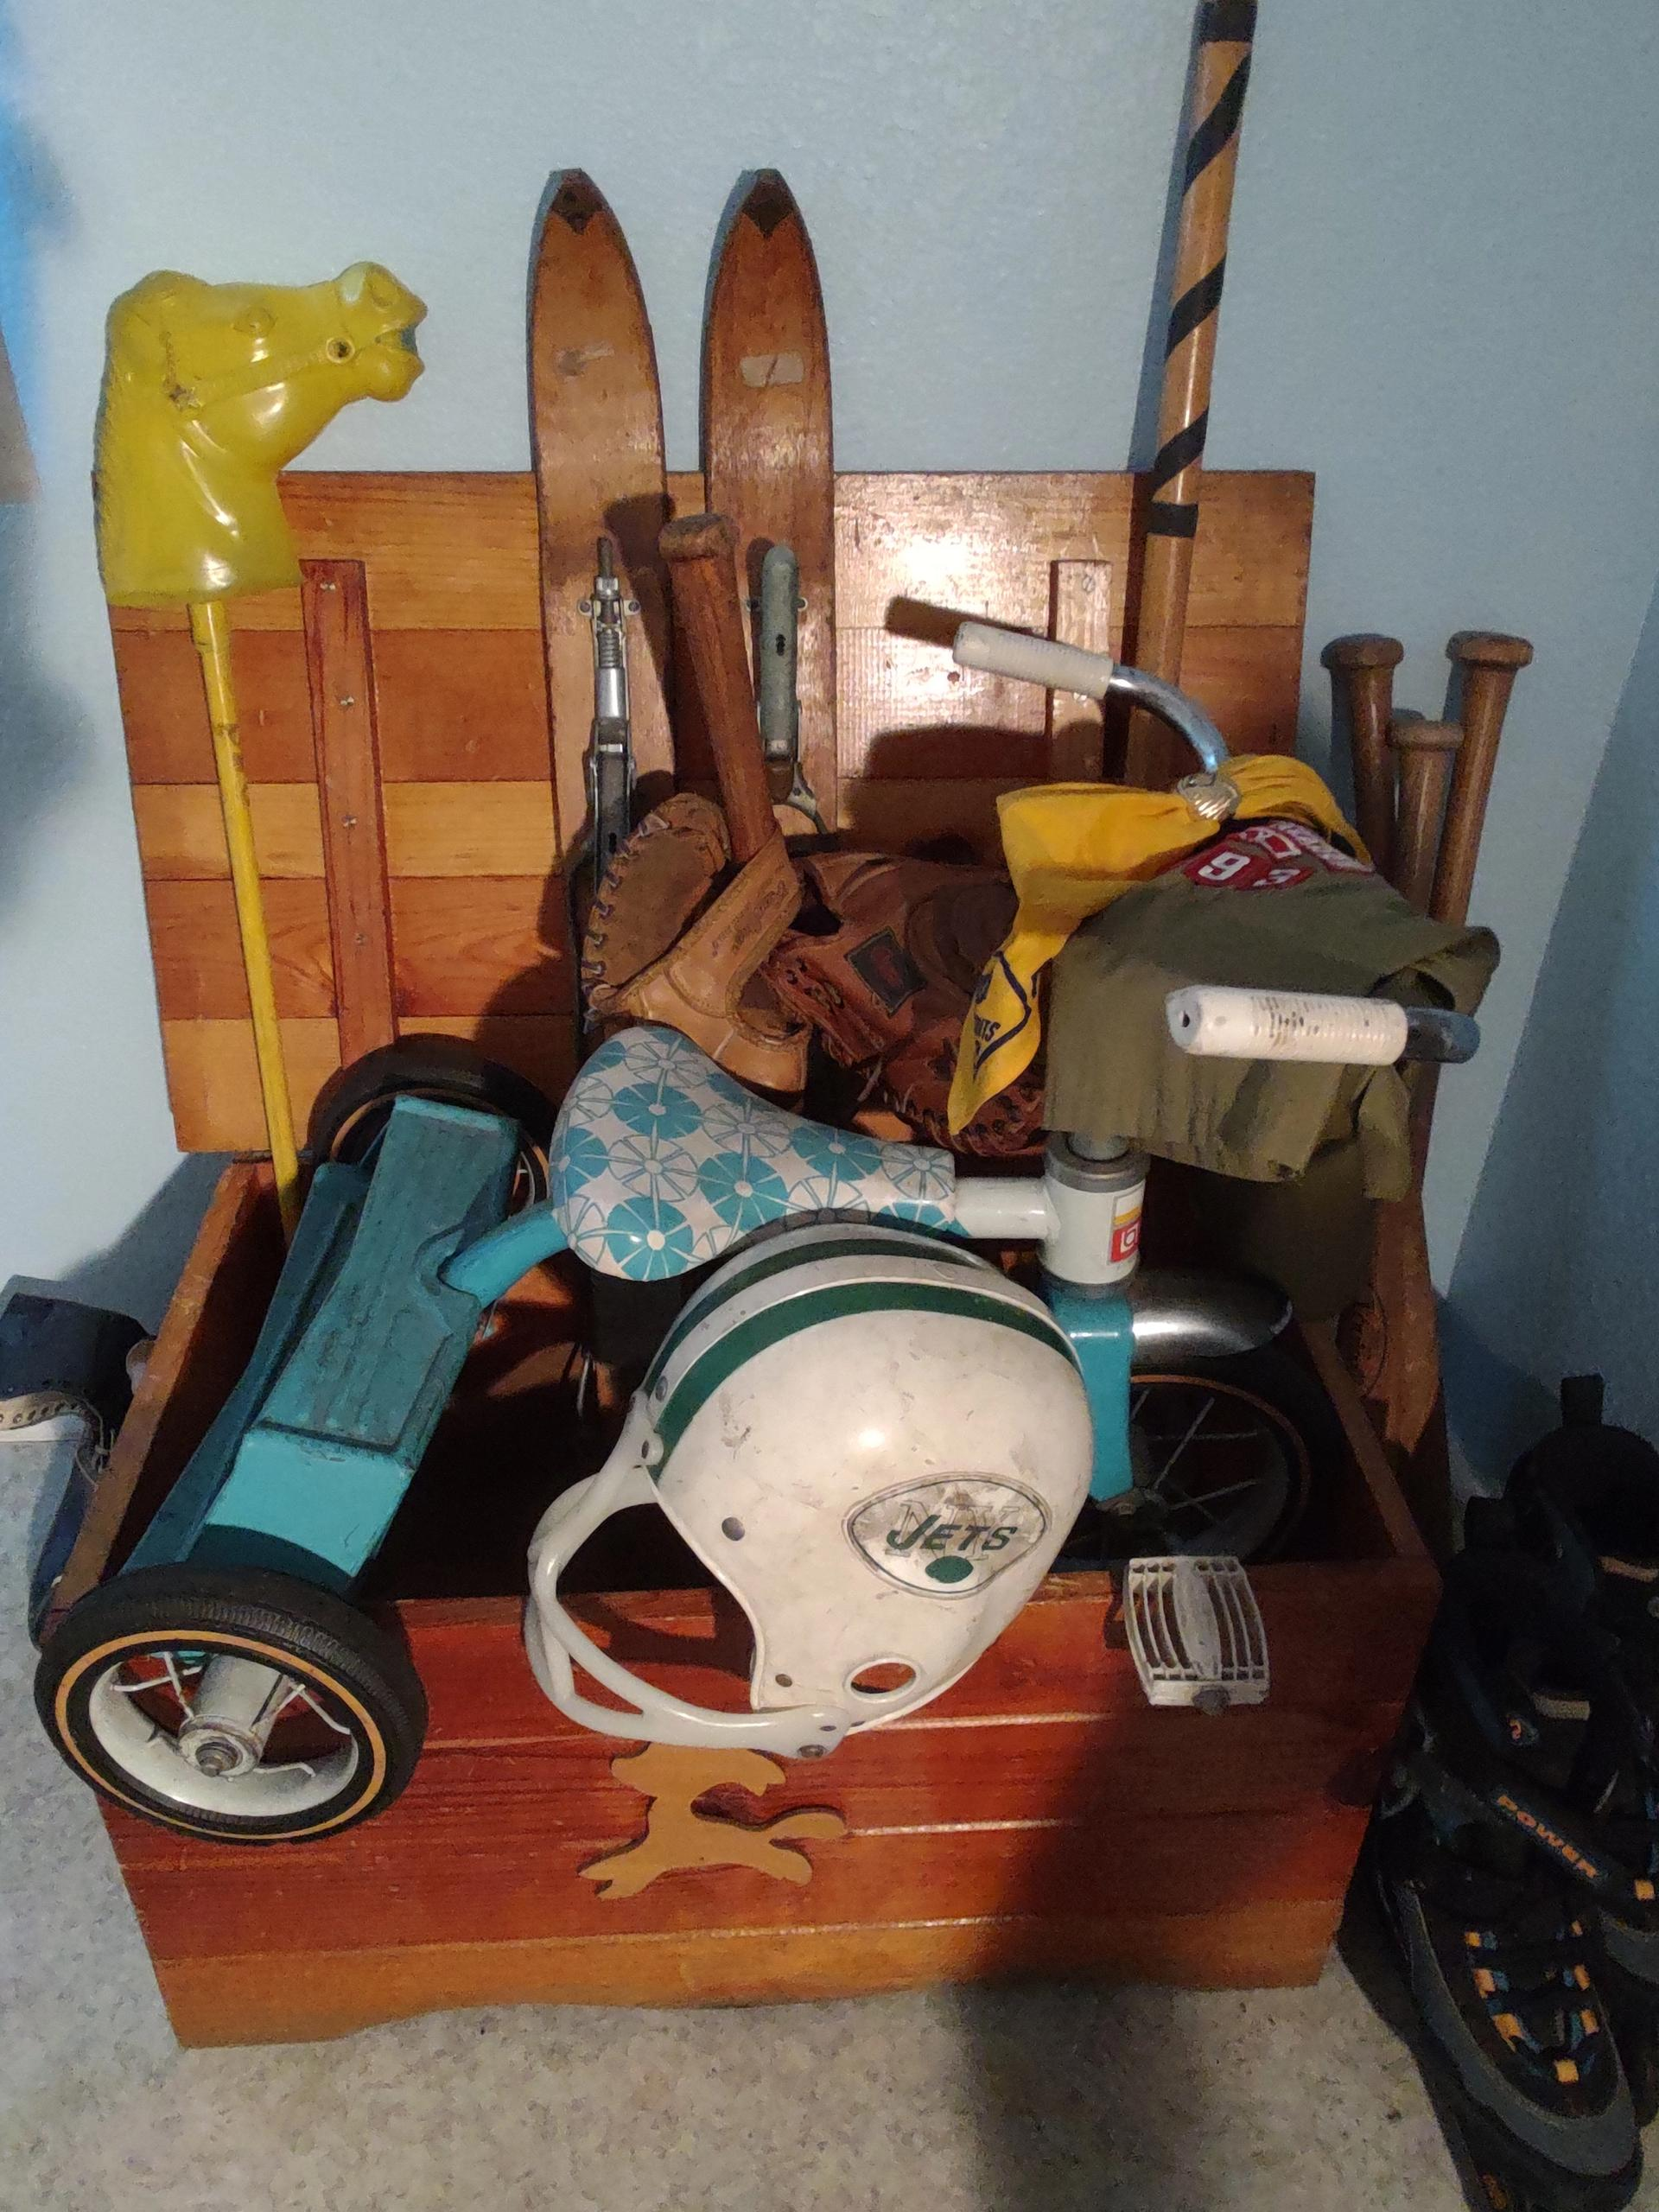 A picture of an old wooden varnished child's crate, containing many childhood sports toys and items, including an old pair of short wooden skis, a stickball bat, four wooden classic baseball bats, a couple of baseball gloves, a NY Jets plastic football helmet, a child's blue and white tricycle, and a pair of in-line skates from yesteryear.